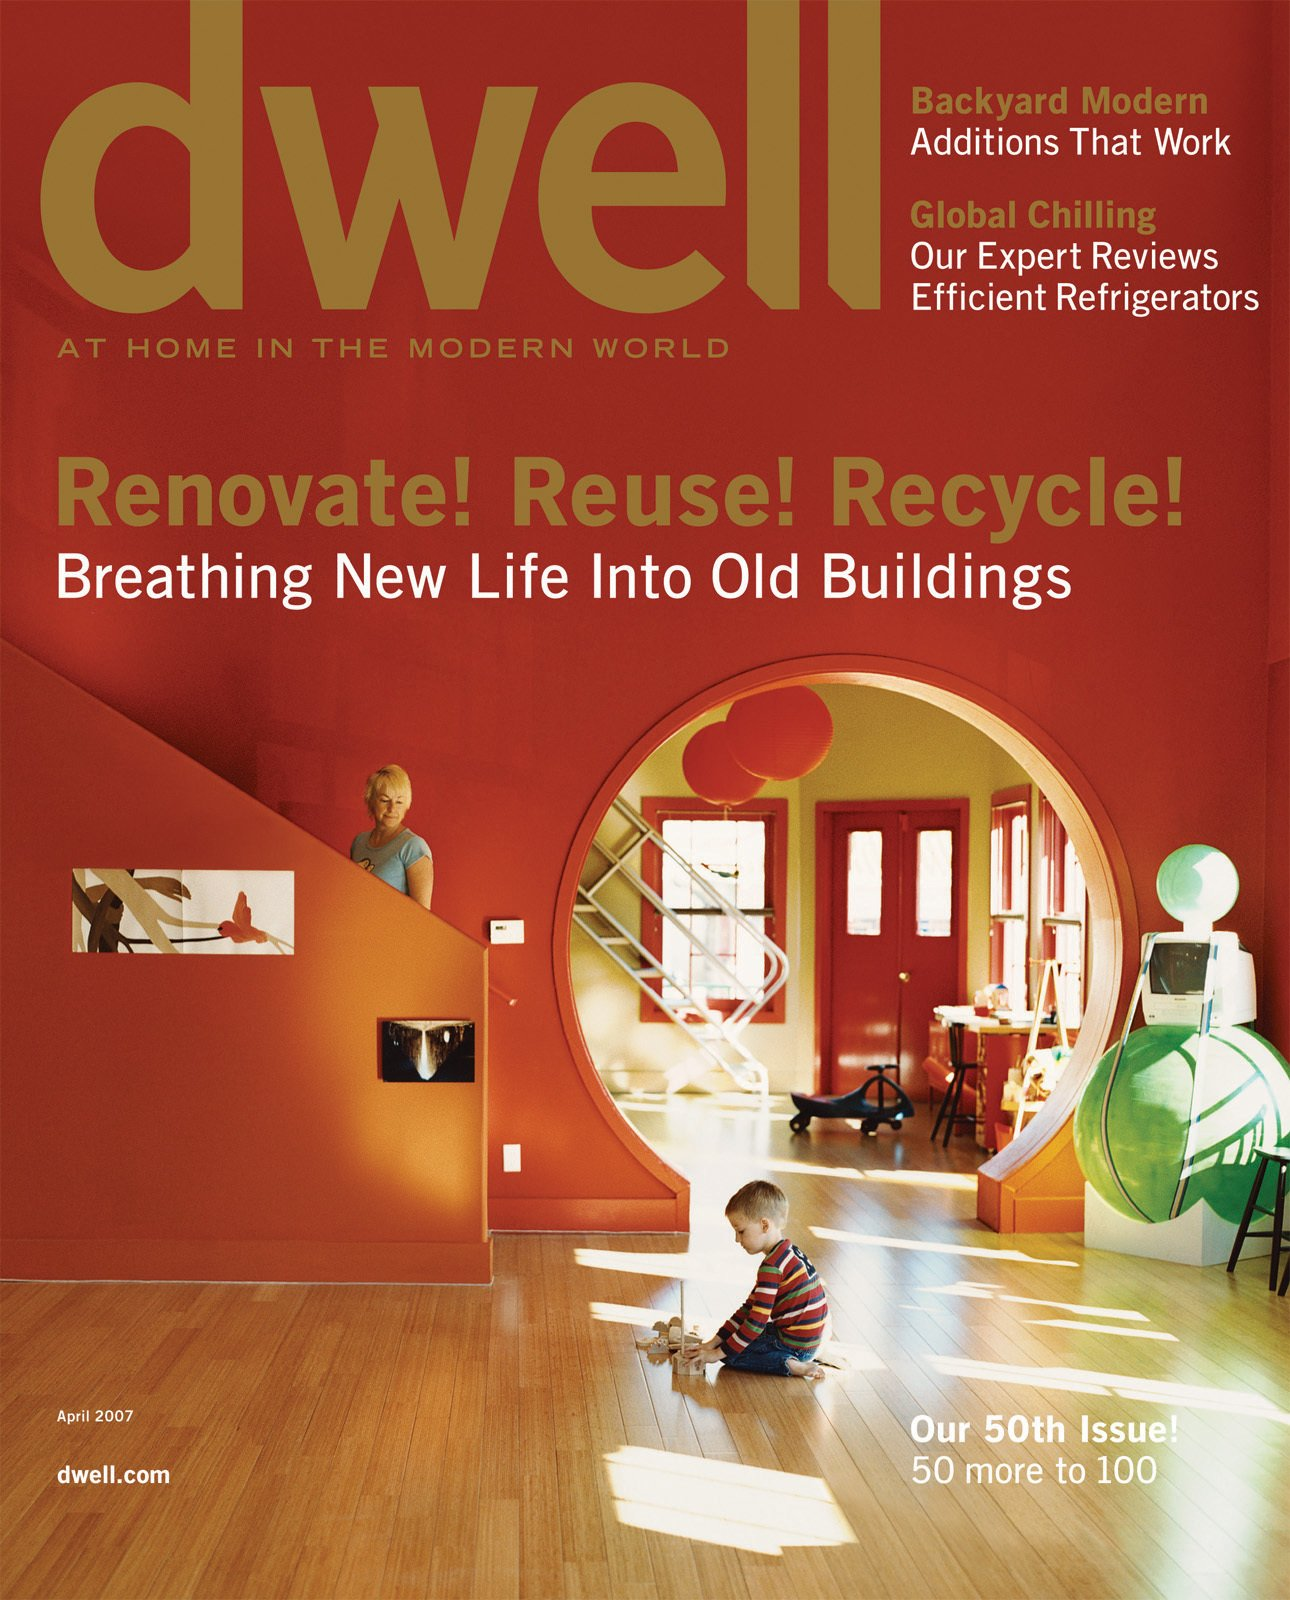 RENOVATE! REUSE! RECYCLE!  Breathing New Life Into Old Buildings  April 2007, Vol. 07 Issue 05.  Dwell April 2007, Vol. 07 Issue 05: Renovate! Reuse! Recycle! by Dwell